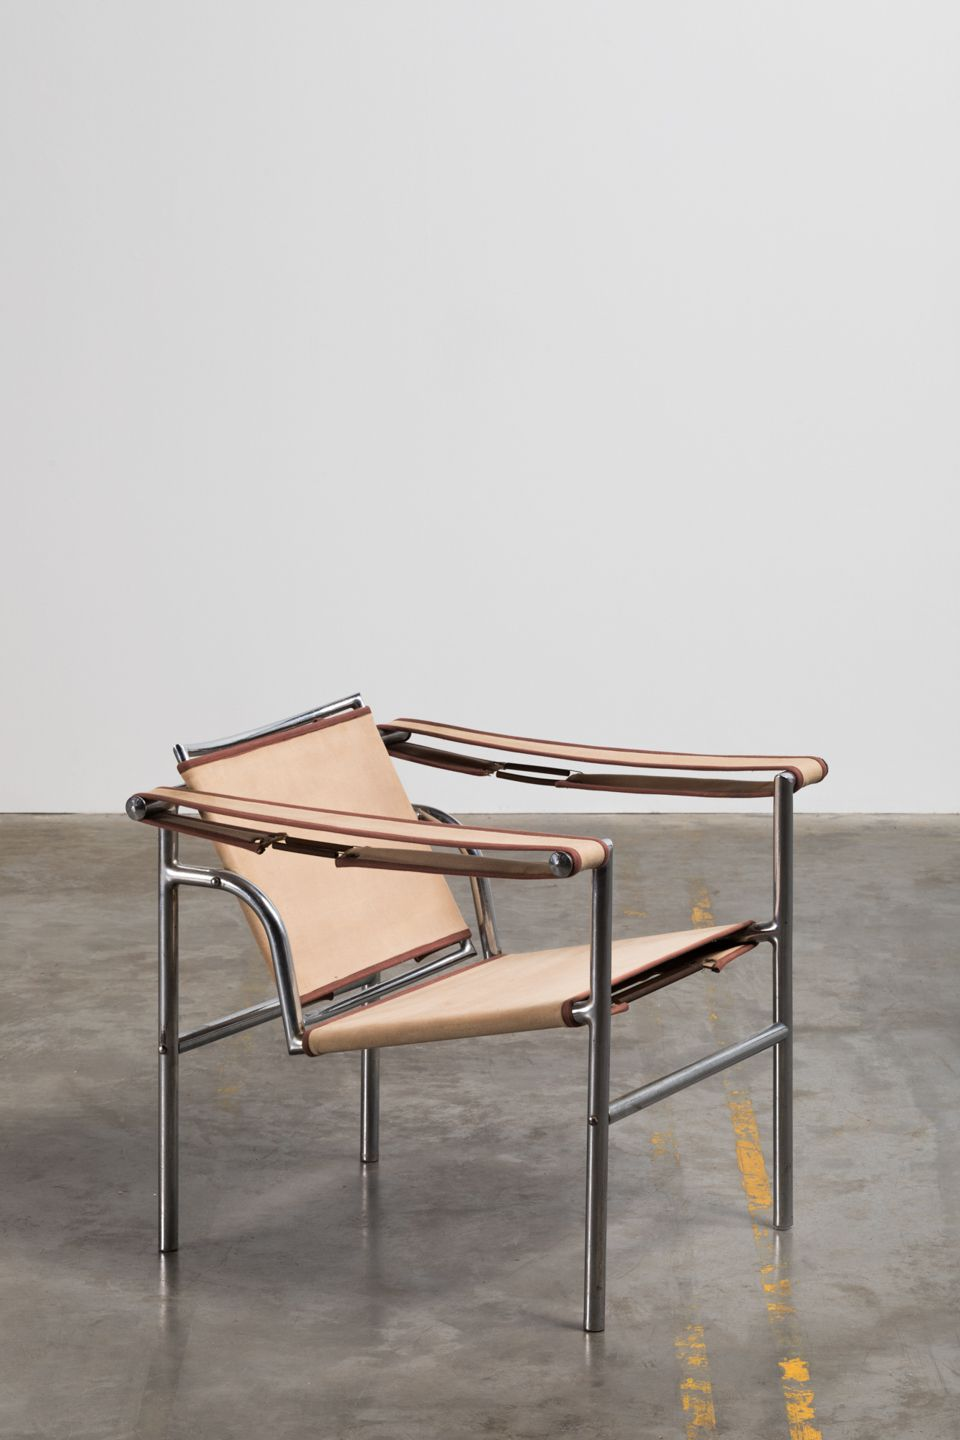 Chair with metal tubing